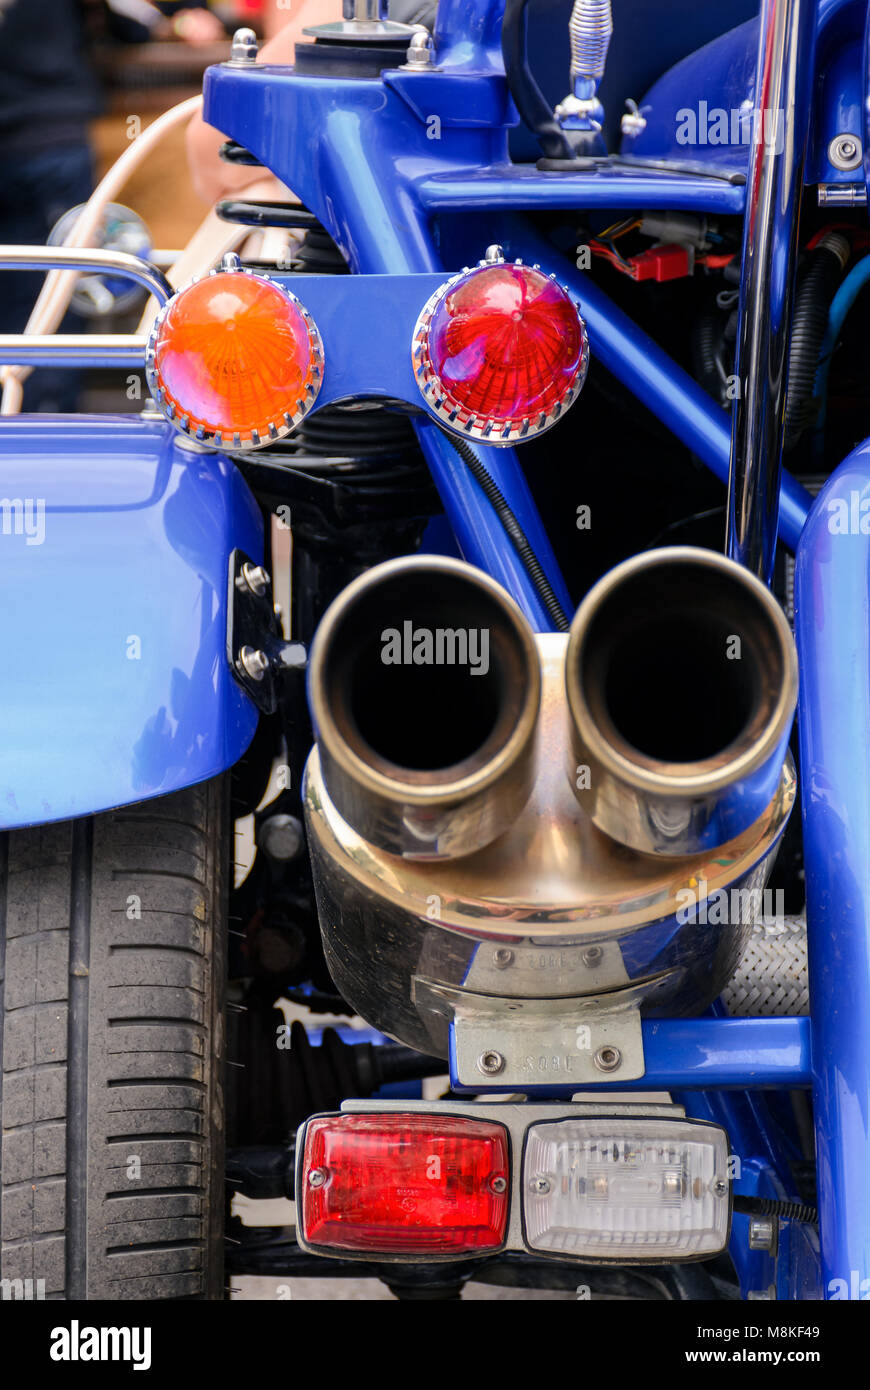 back side of a blue motorcycle. lovely detail shot of lights and shiny exhaust pipes - Stock Image